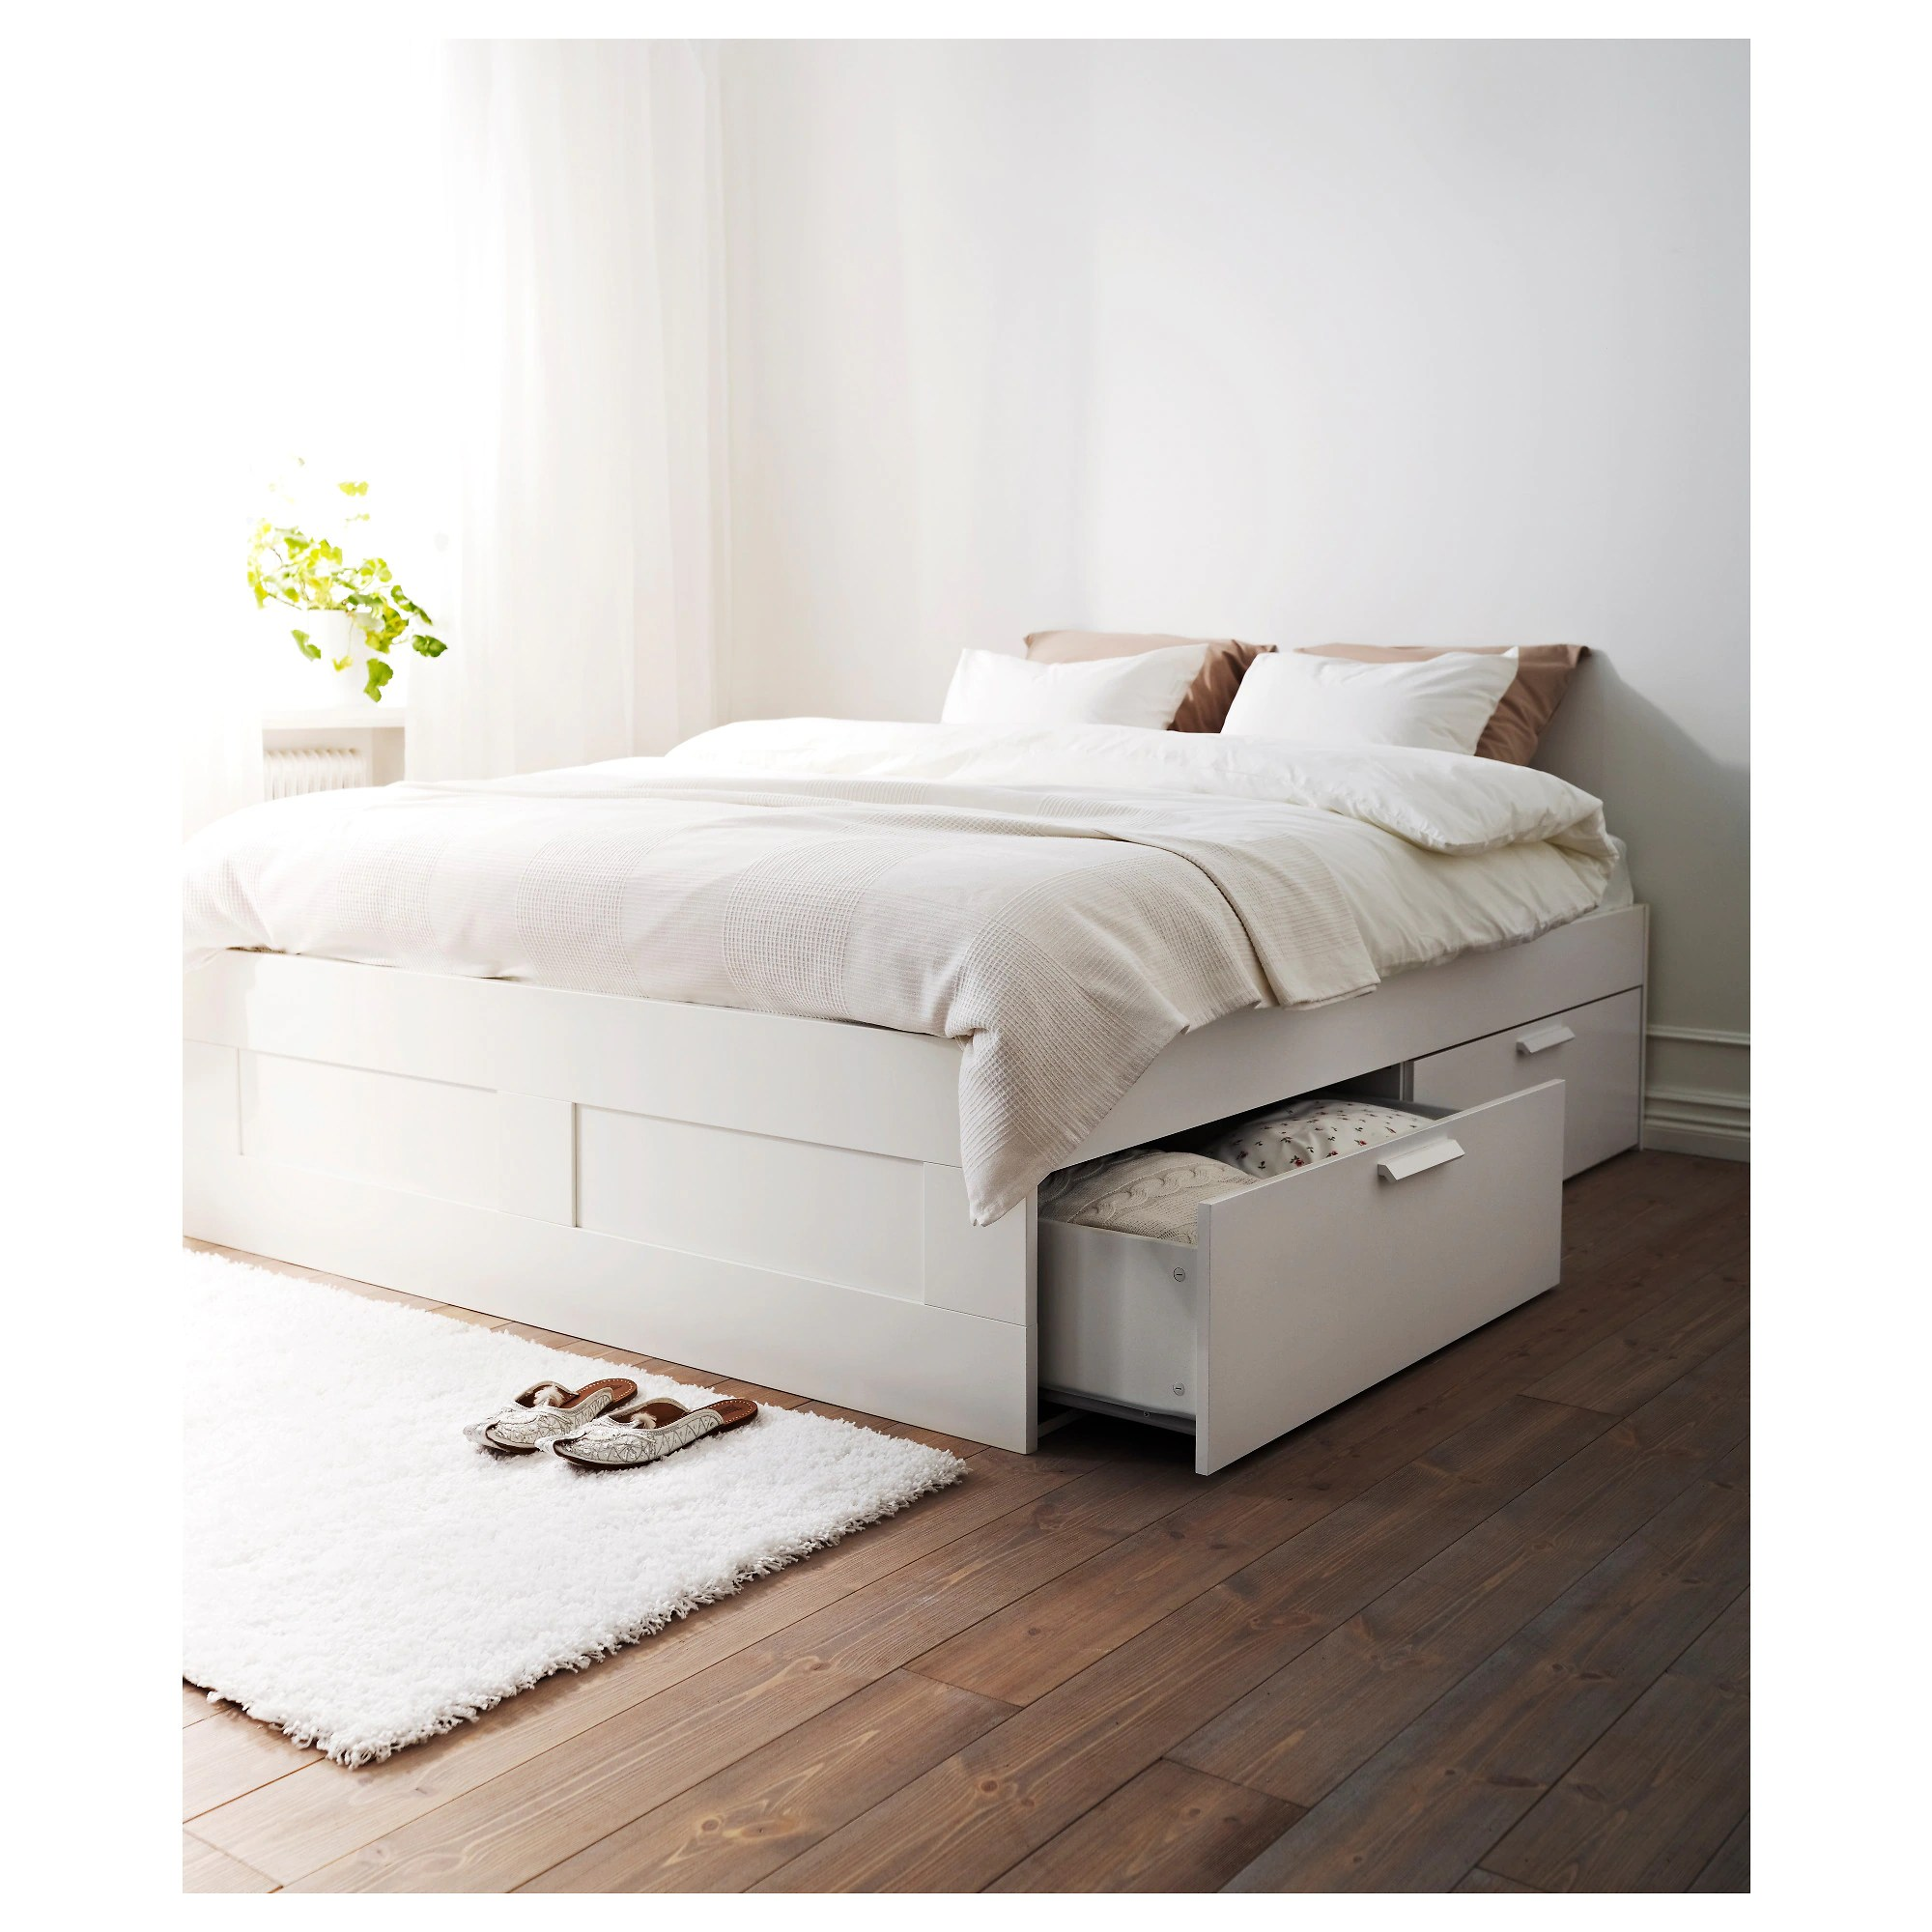 Bett 120x200 Bei Ikea Brimnes Bed Frame With Storage Queen White Ikea